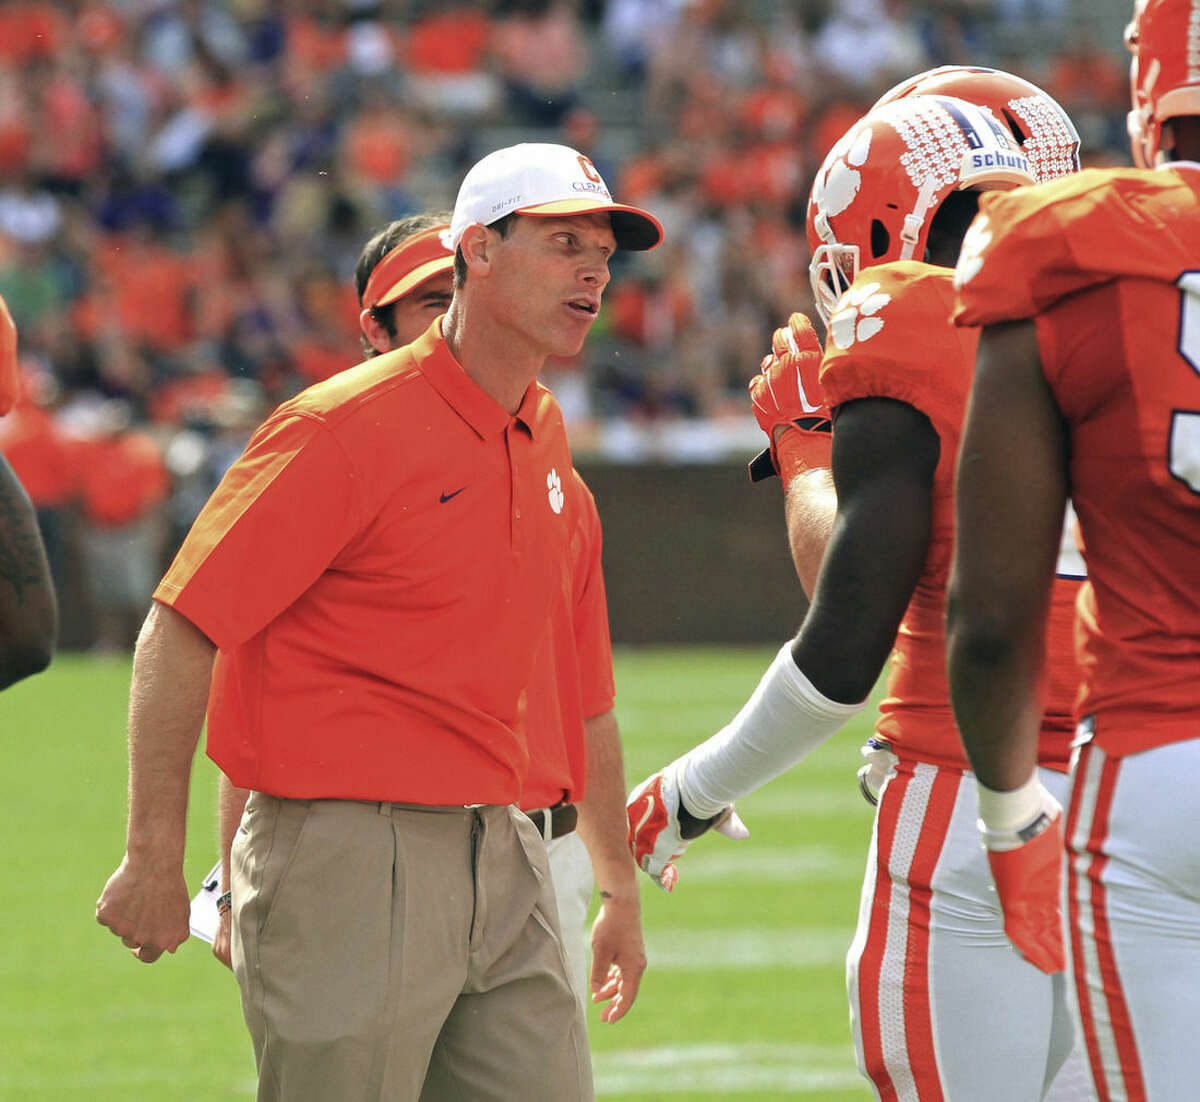 FILE - In this April 11, 2015, file photo, Clemson defensive coordinator Brent Venables, left, gets on a player during Clemson's NCAA college football spring game at Memorial Stadium in Clemson, S.C. Clemson's top-ranked defense came at teams in waves last season, smothering opponents with nearly two full units of talented and experienced players. Without that same depth this year, the Tigers have slipped into a late-season slump. (Mark Crammer/Anderson Independent-Mail via AP, File)